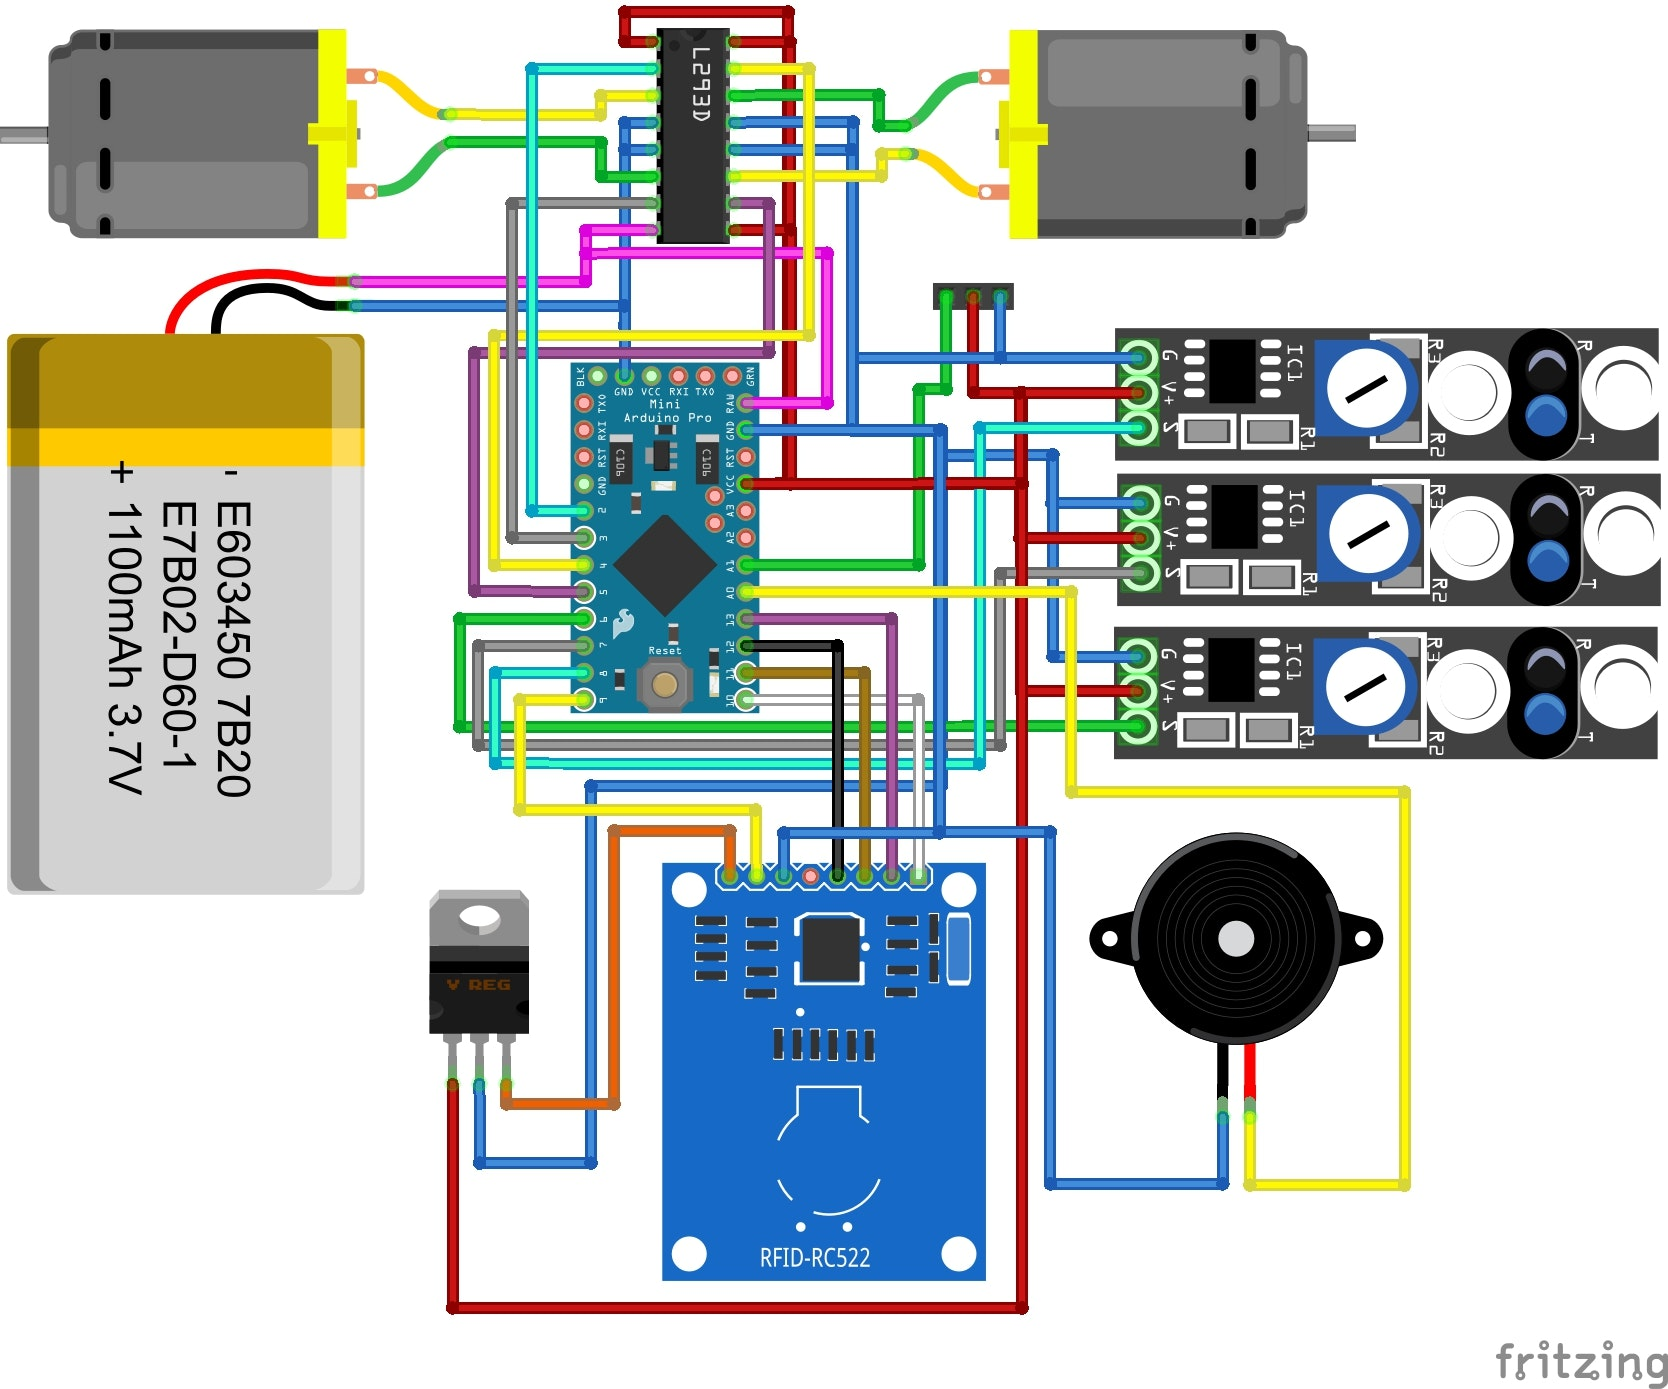 Line Follower Robot Scanner Circuit Diagram - Wiring Diagram Content